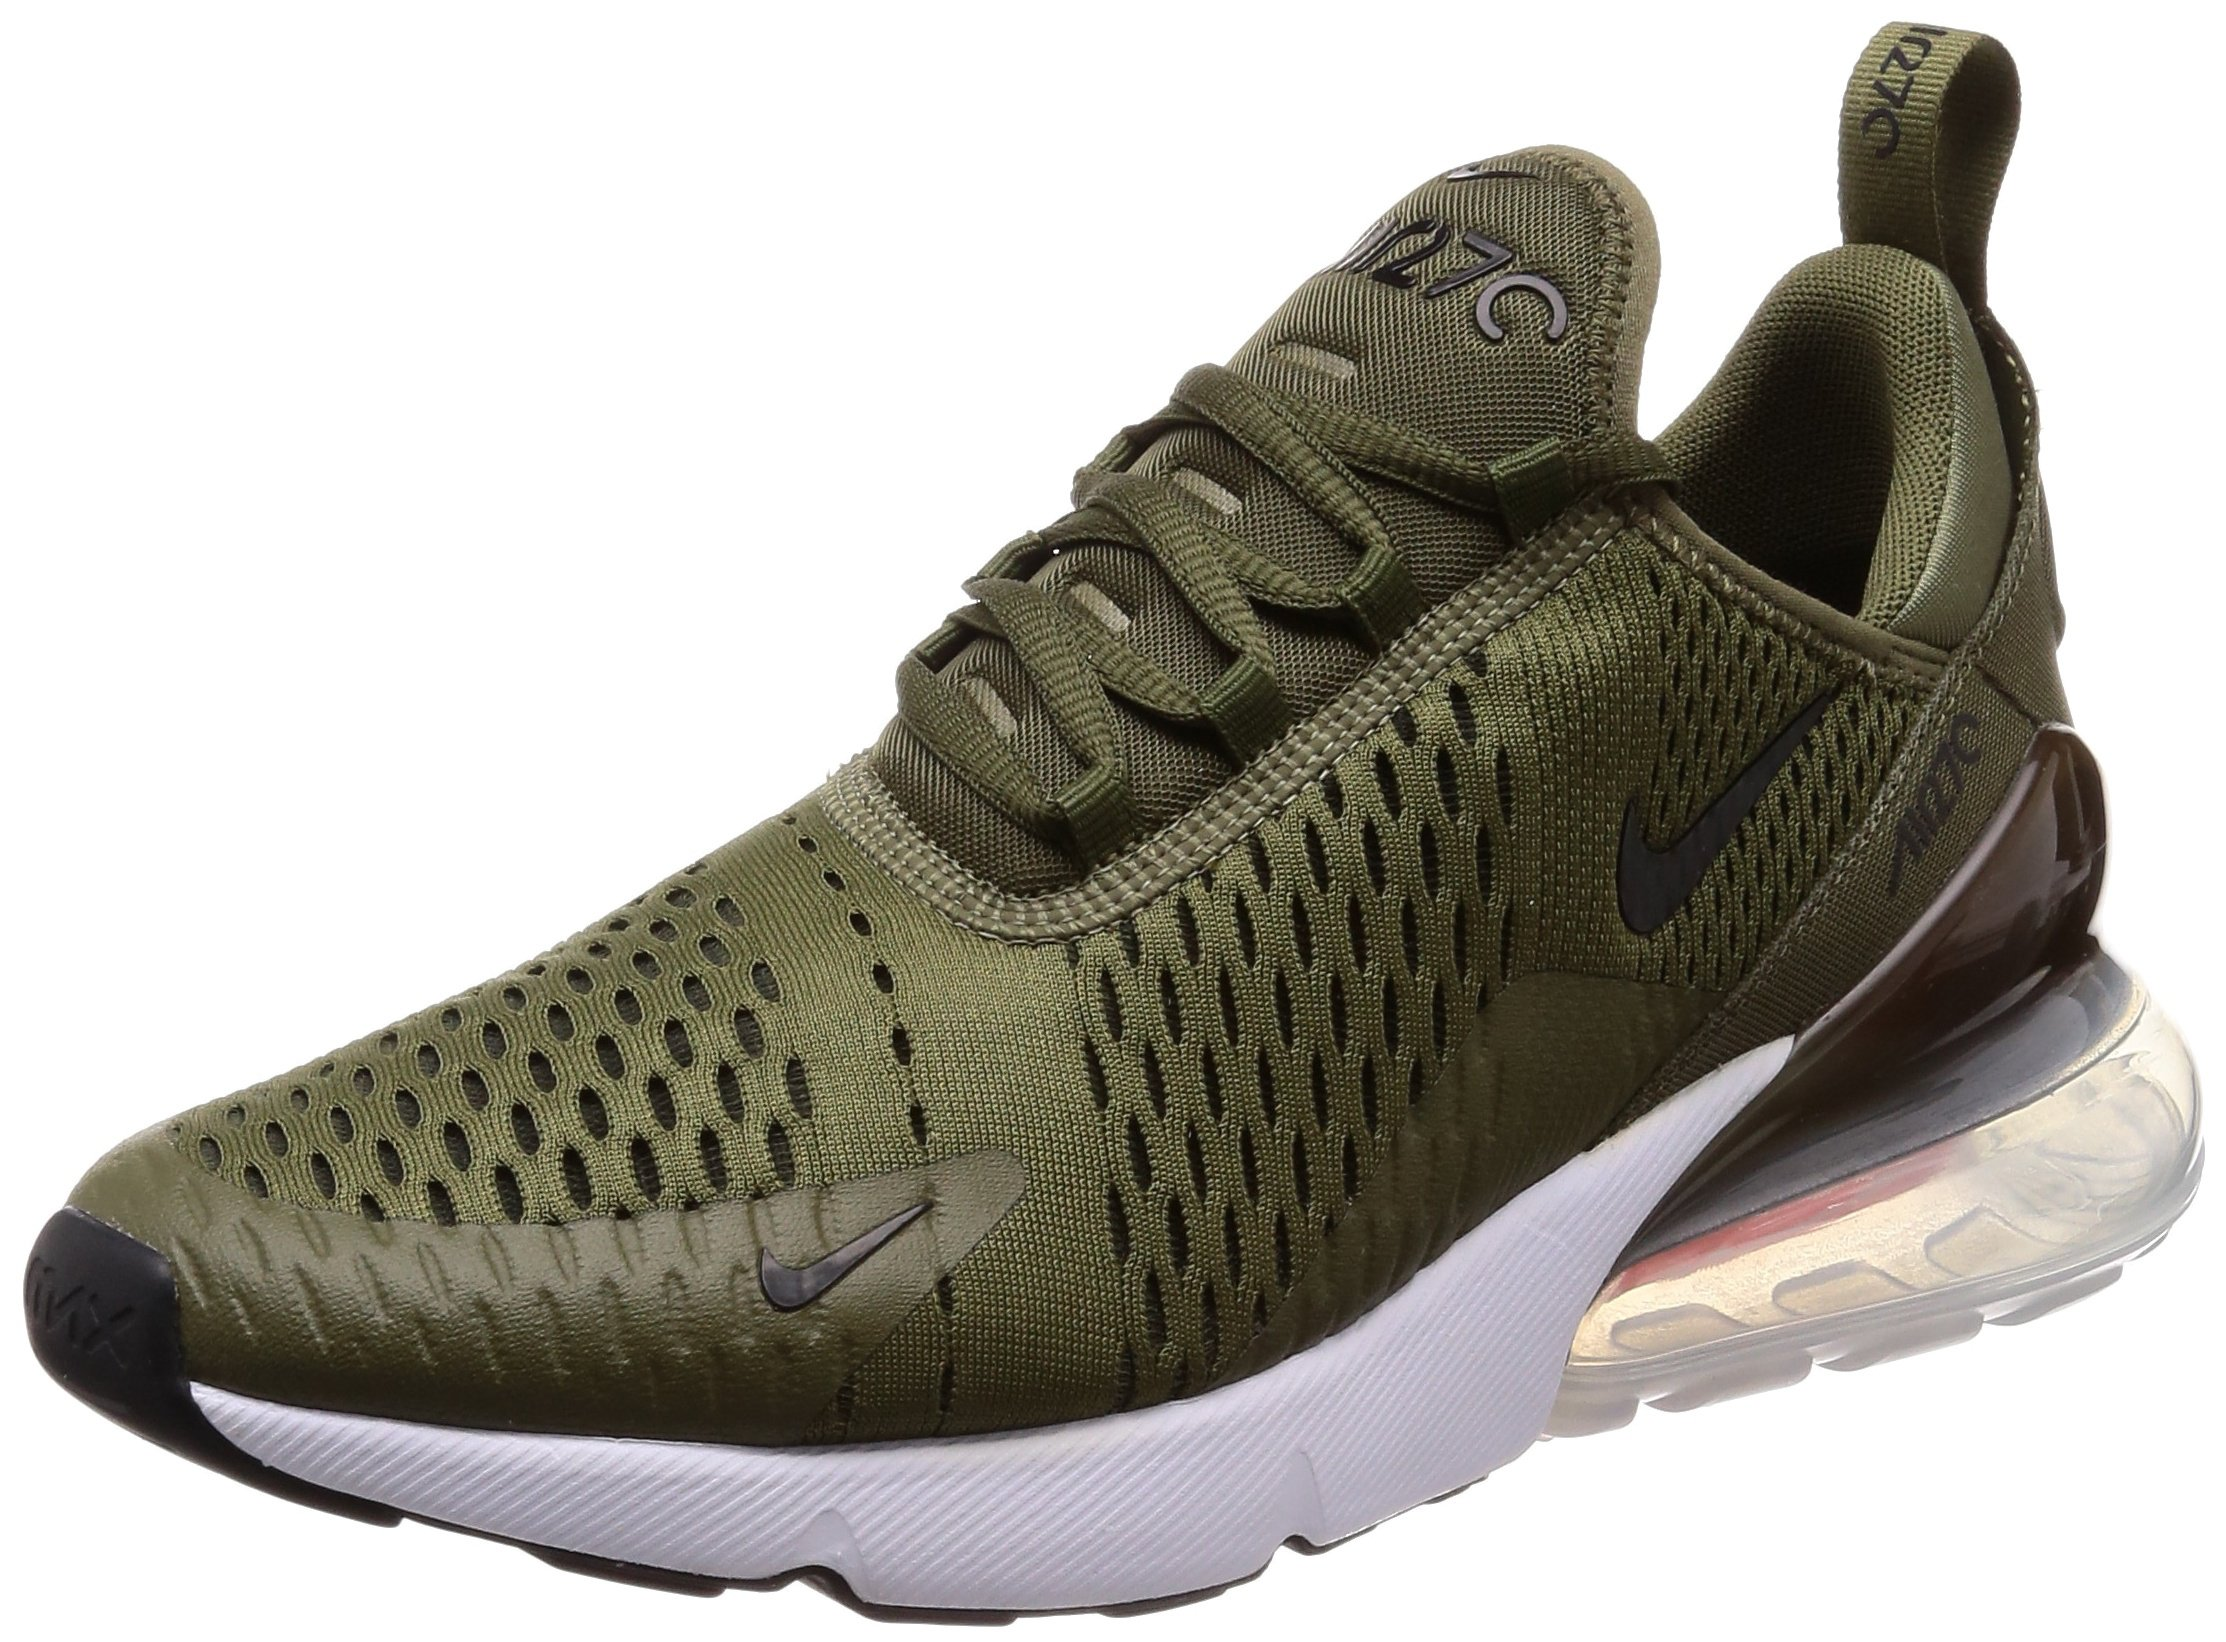 Nike Men's Air Max 270 Medium Olive AH8050 201 (Size: 9)